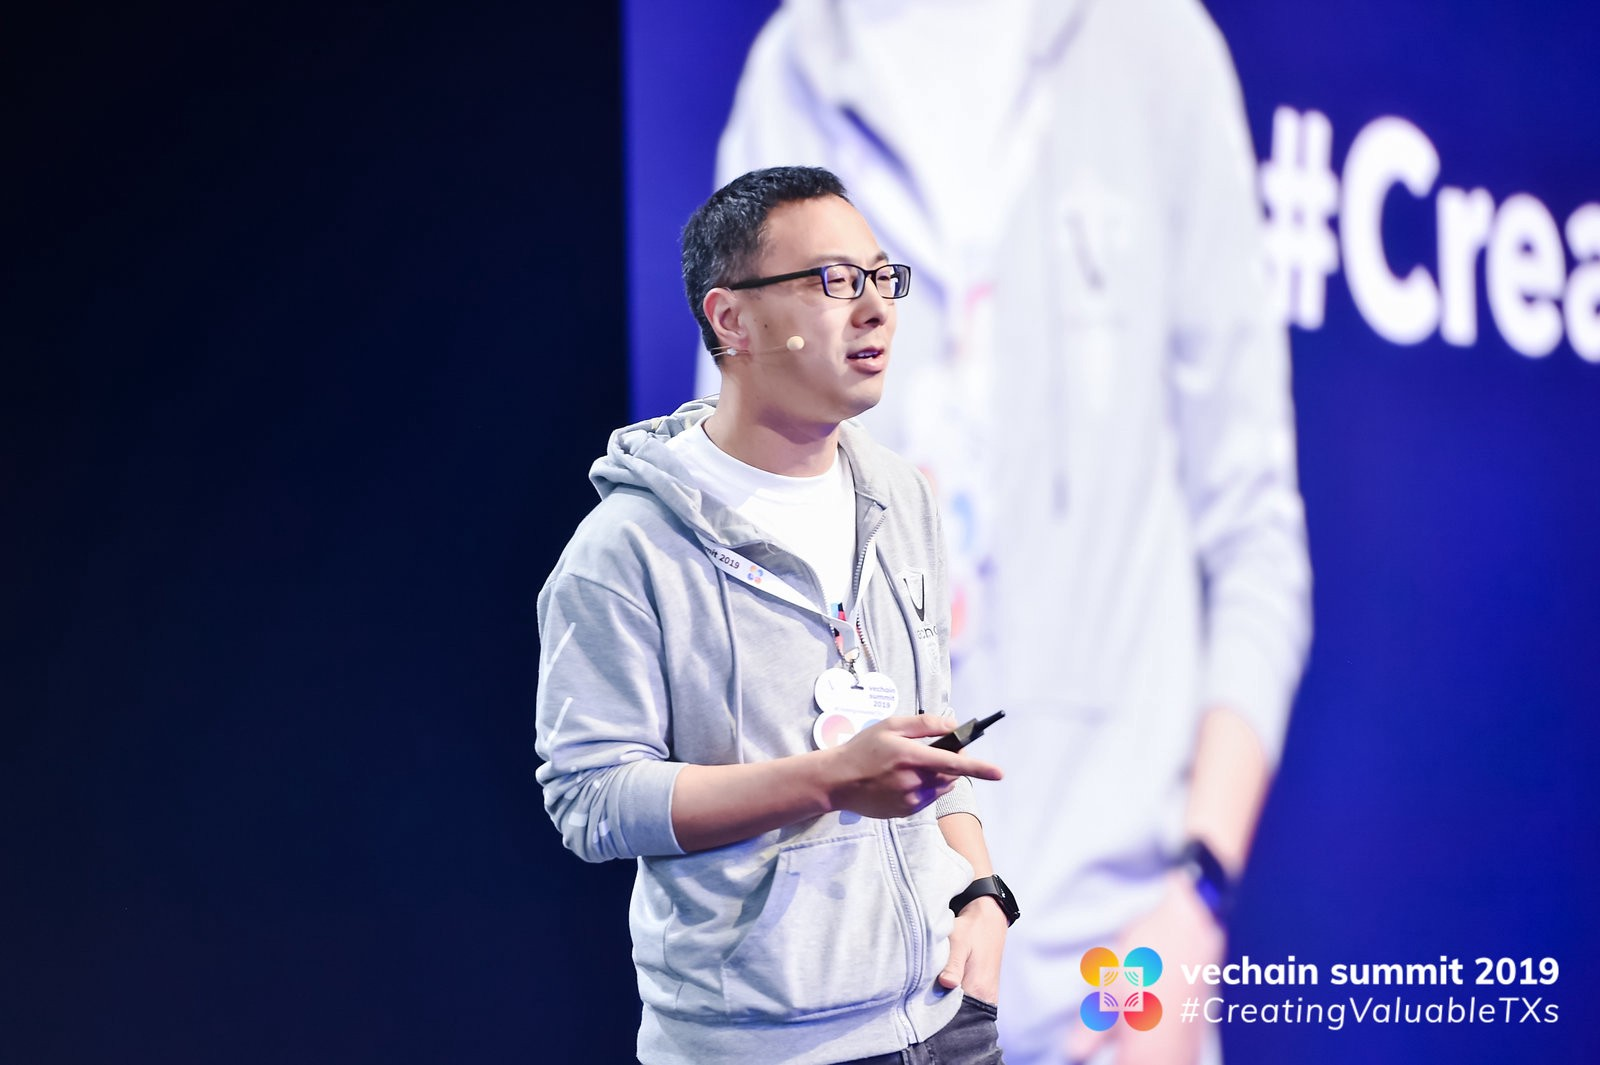 Sunny Lu (VeChain CEO) on stage at VeChain Summit 2019